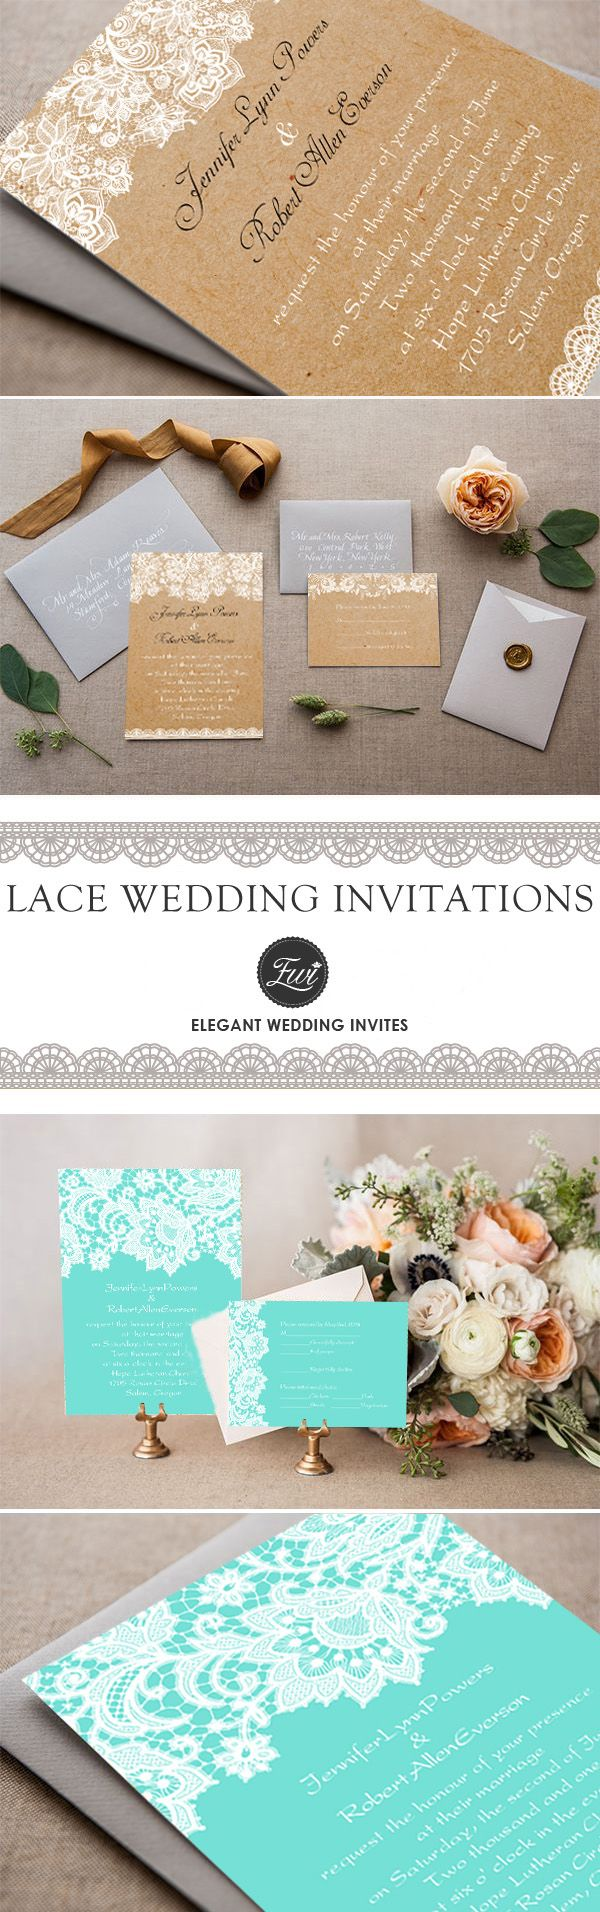 chic rustic elegance custom lace wedding invitations